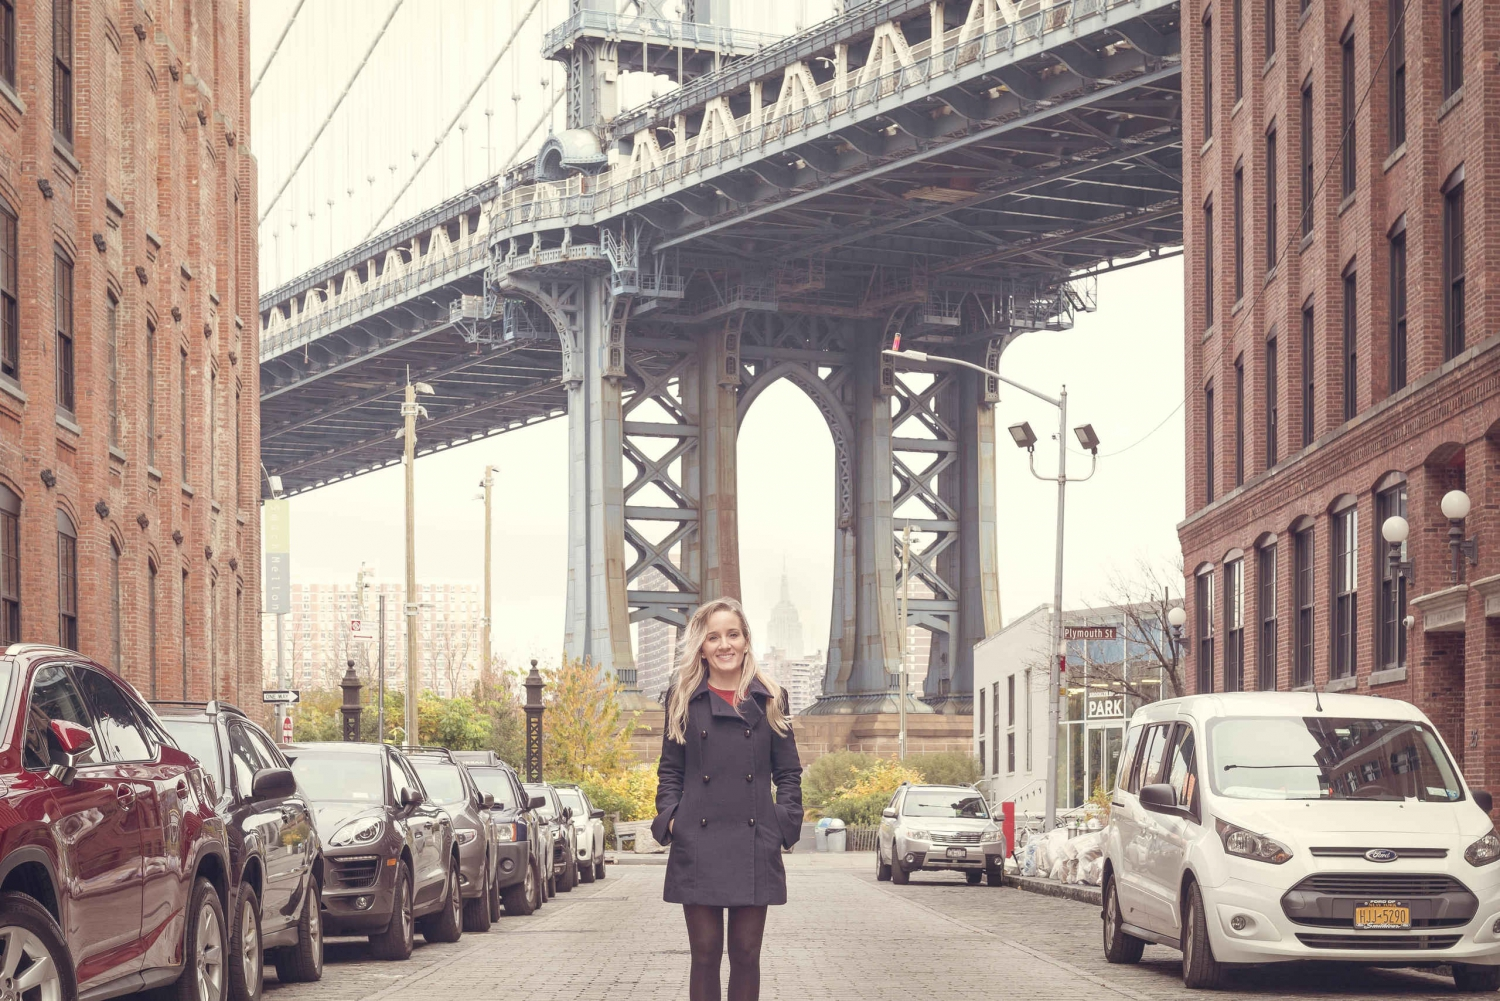 Brooklyn Bridge and Dumbo: Personal Photographer